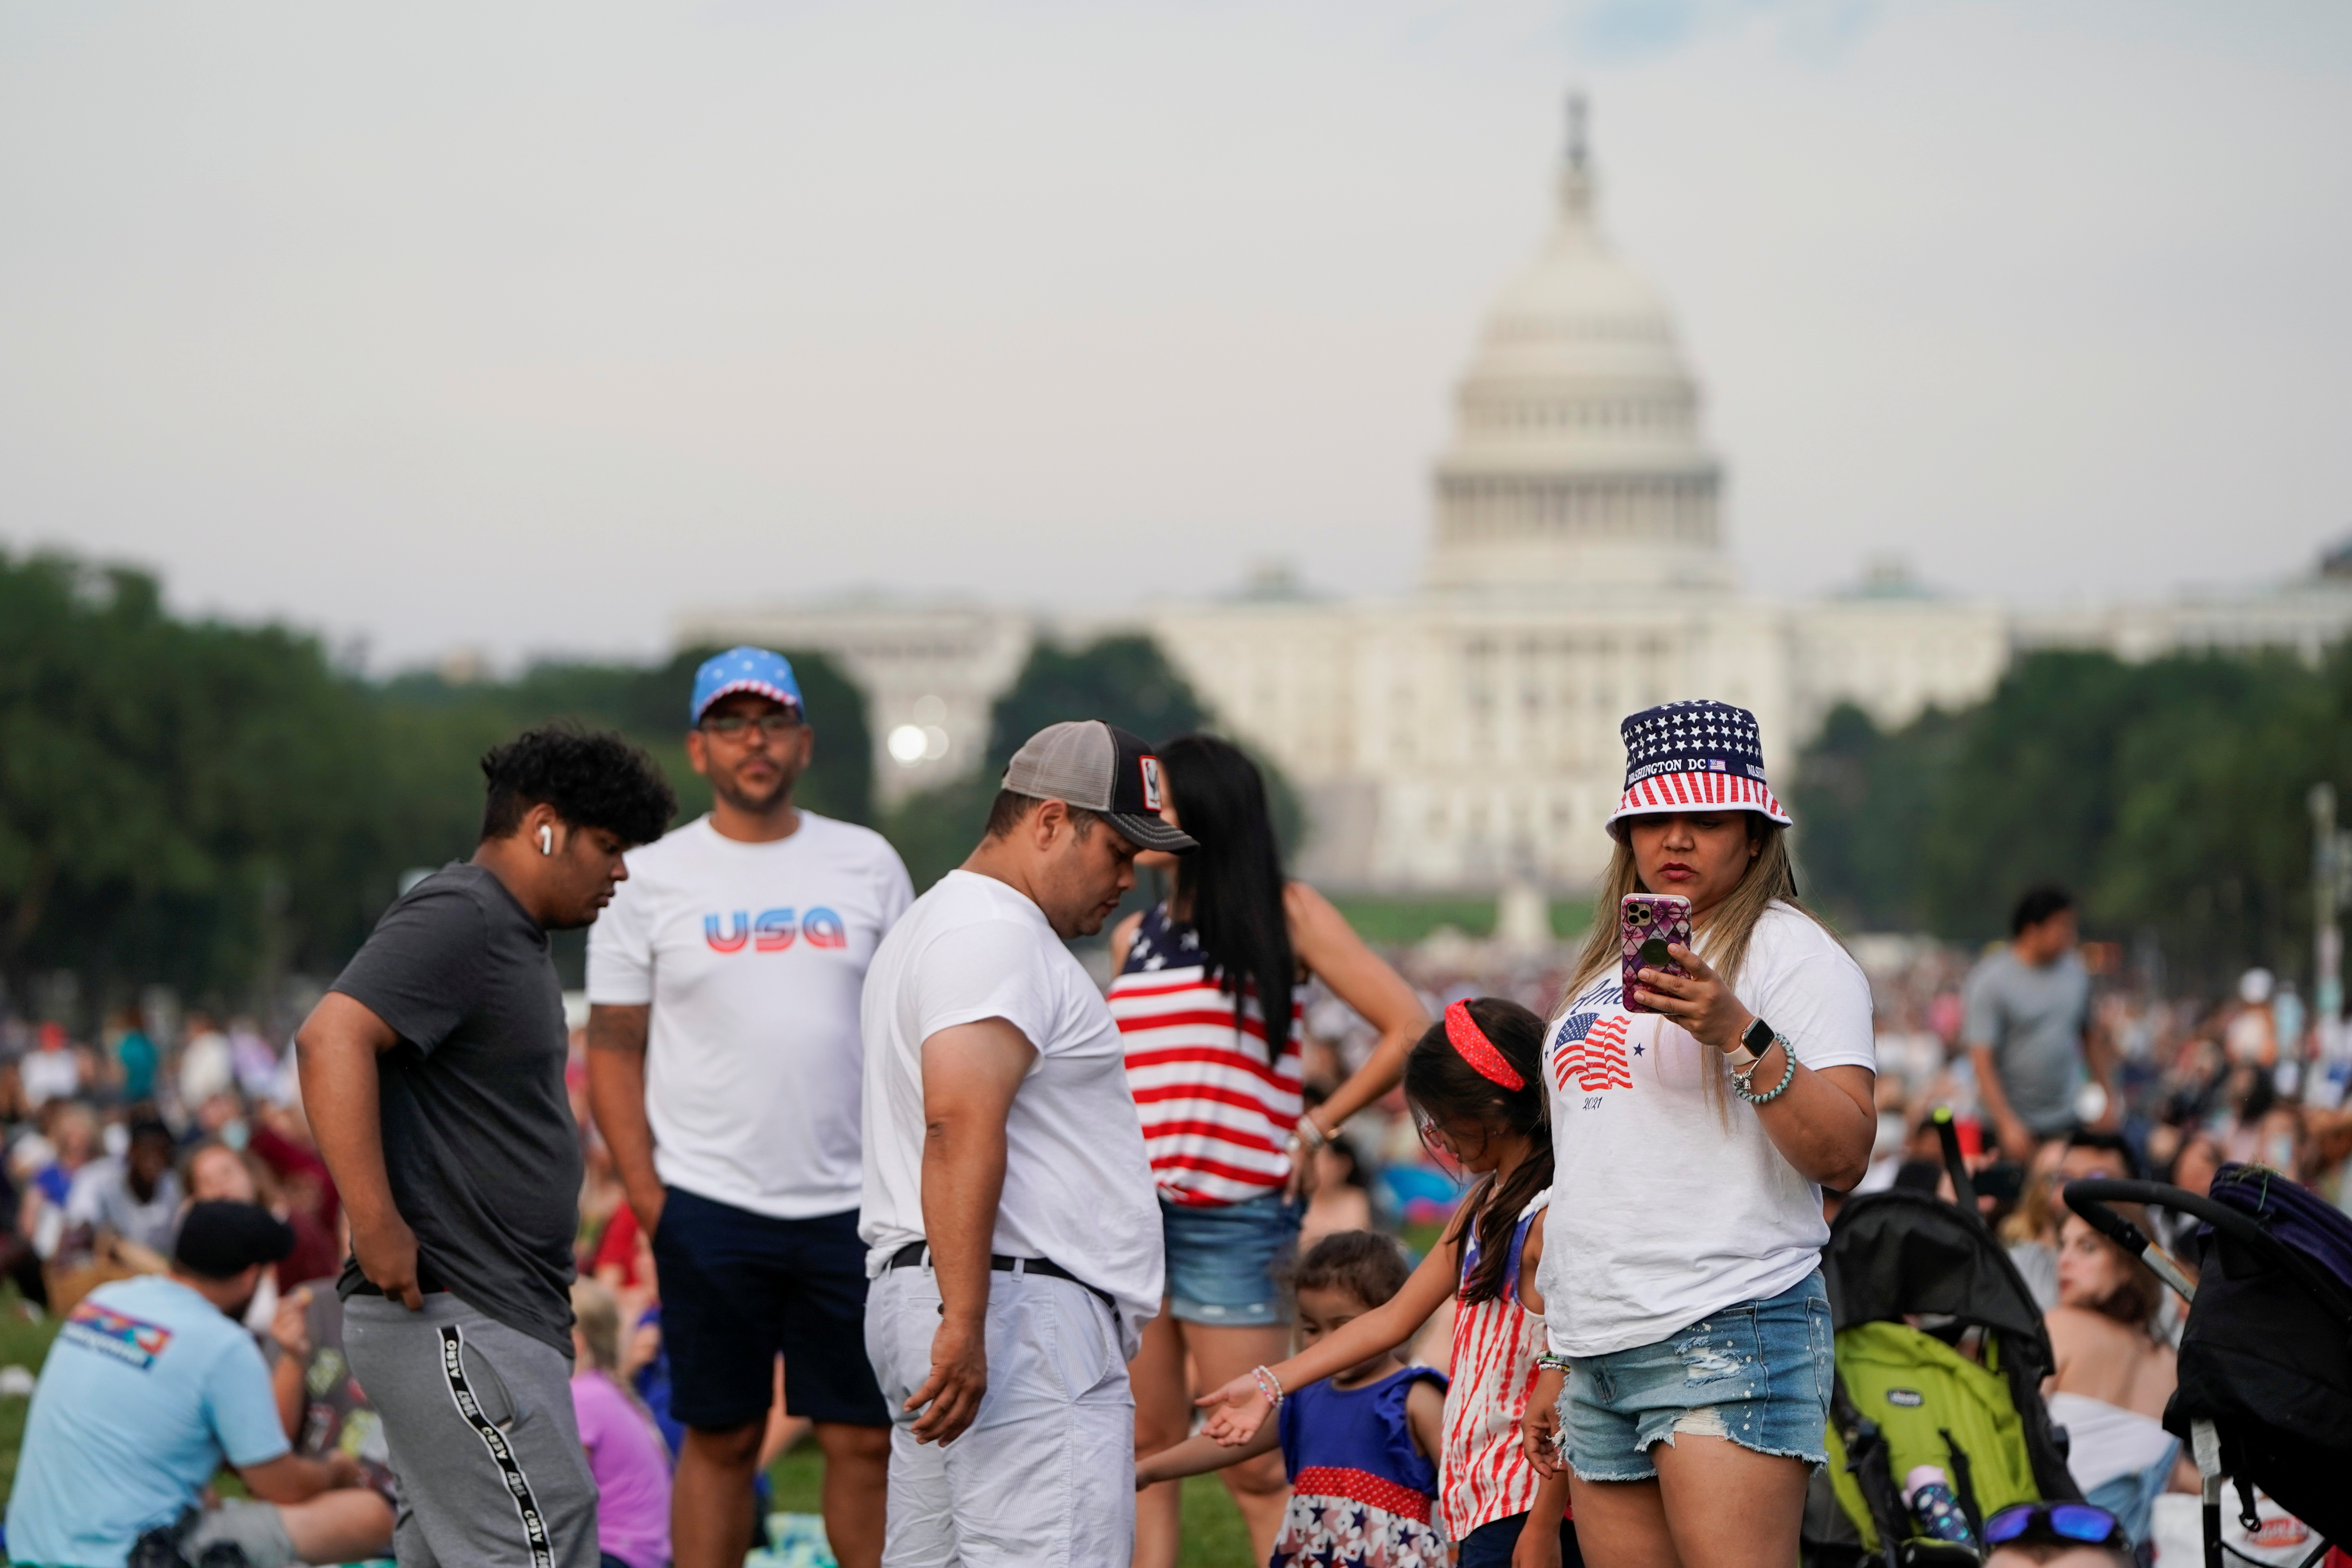 People gather for the annual Independence Day fireworks celebration at the National Mall in Washington, U.S., July 4, 2021.  REUTERS/Joshua Roberts